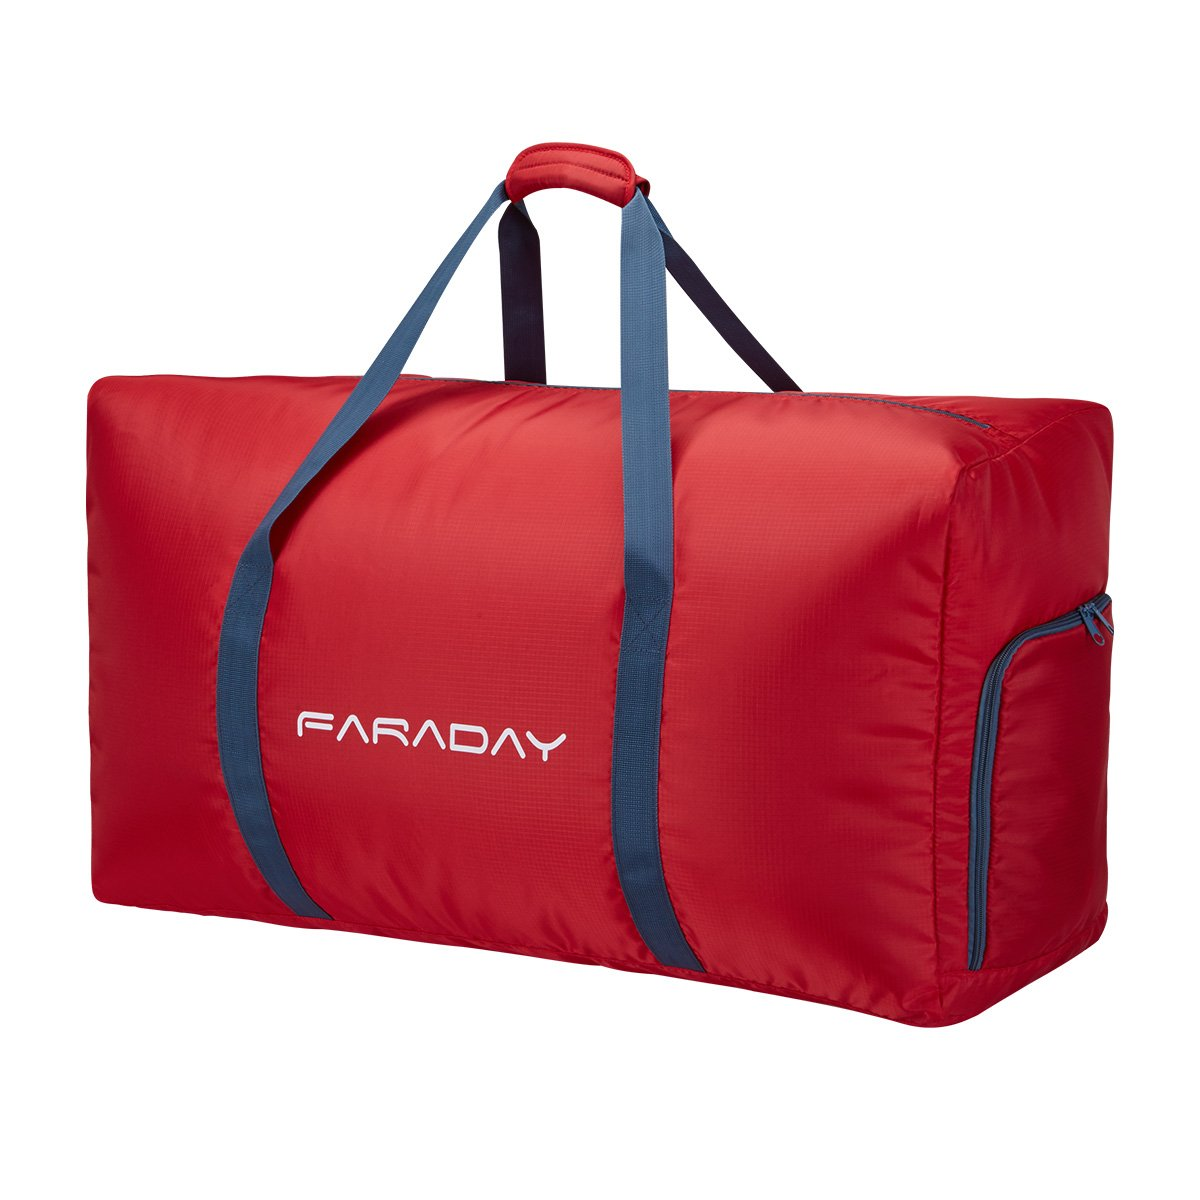 Foldable Duffel Bag 120L Extra Large with Lightweight and Water Resistant for Luggage Gym Sports (Black) Ltd RML00102